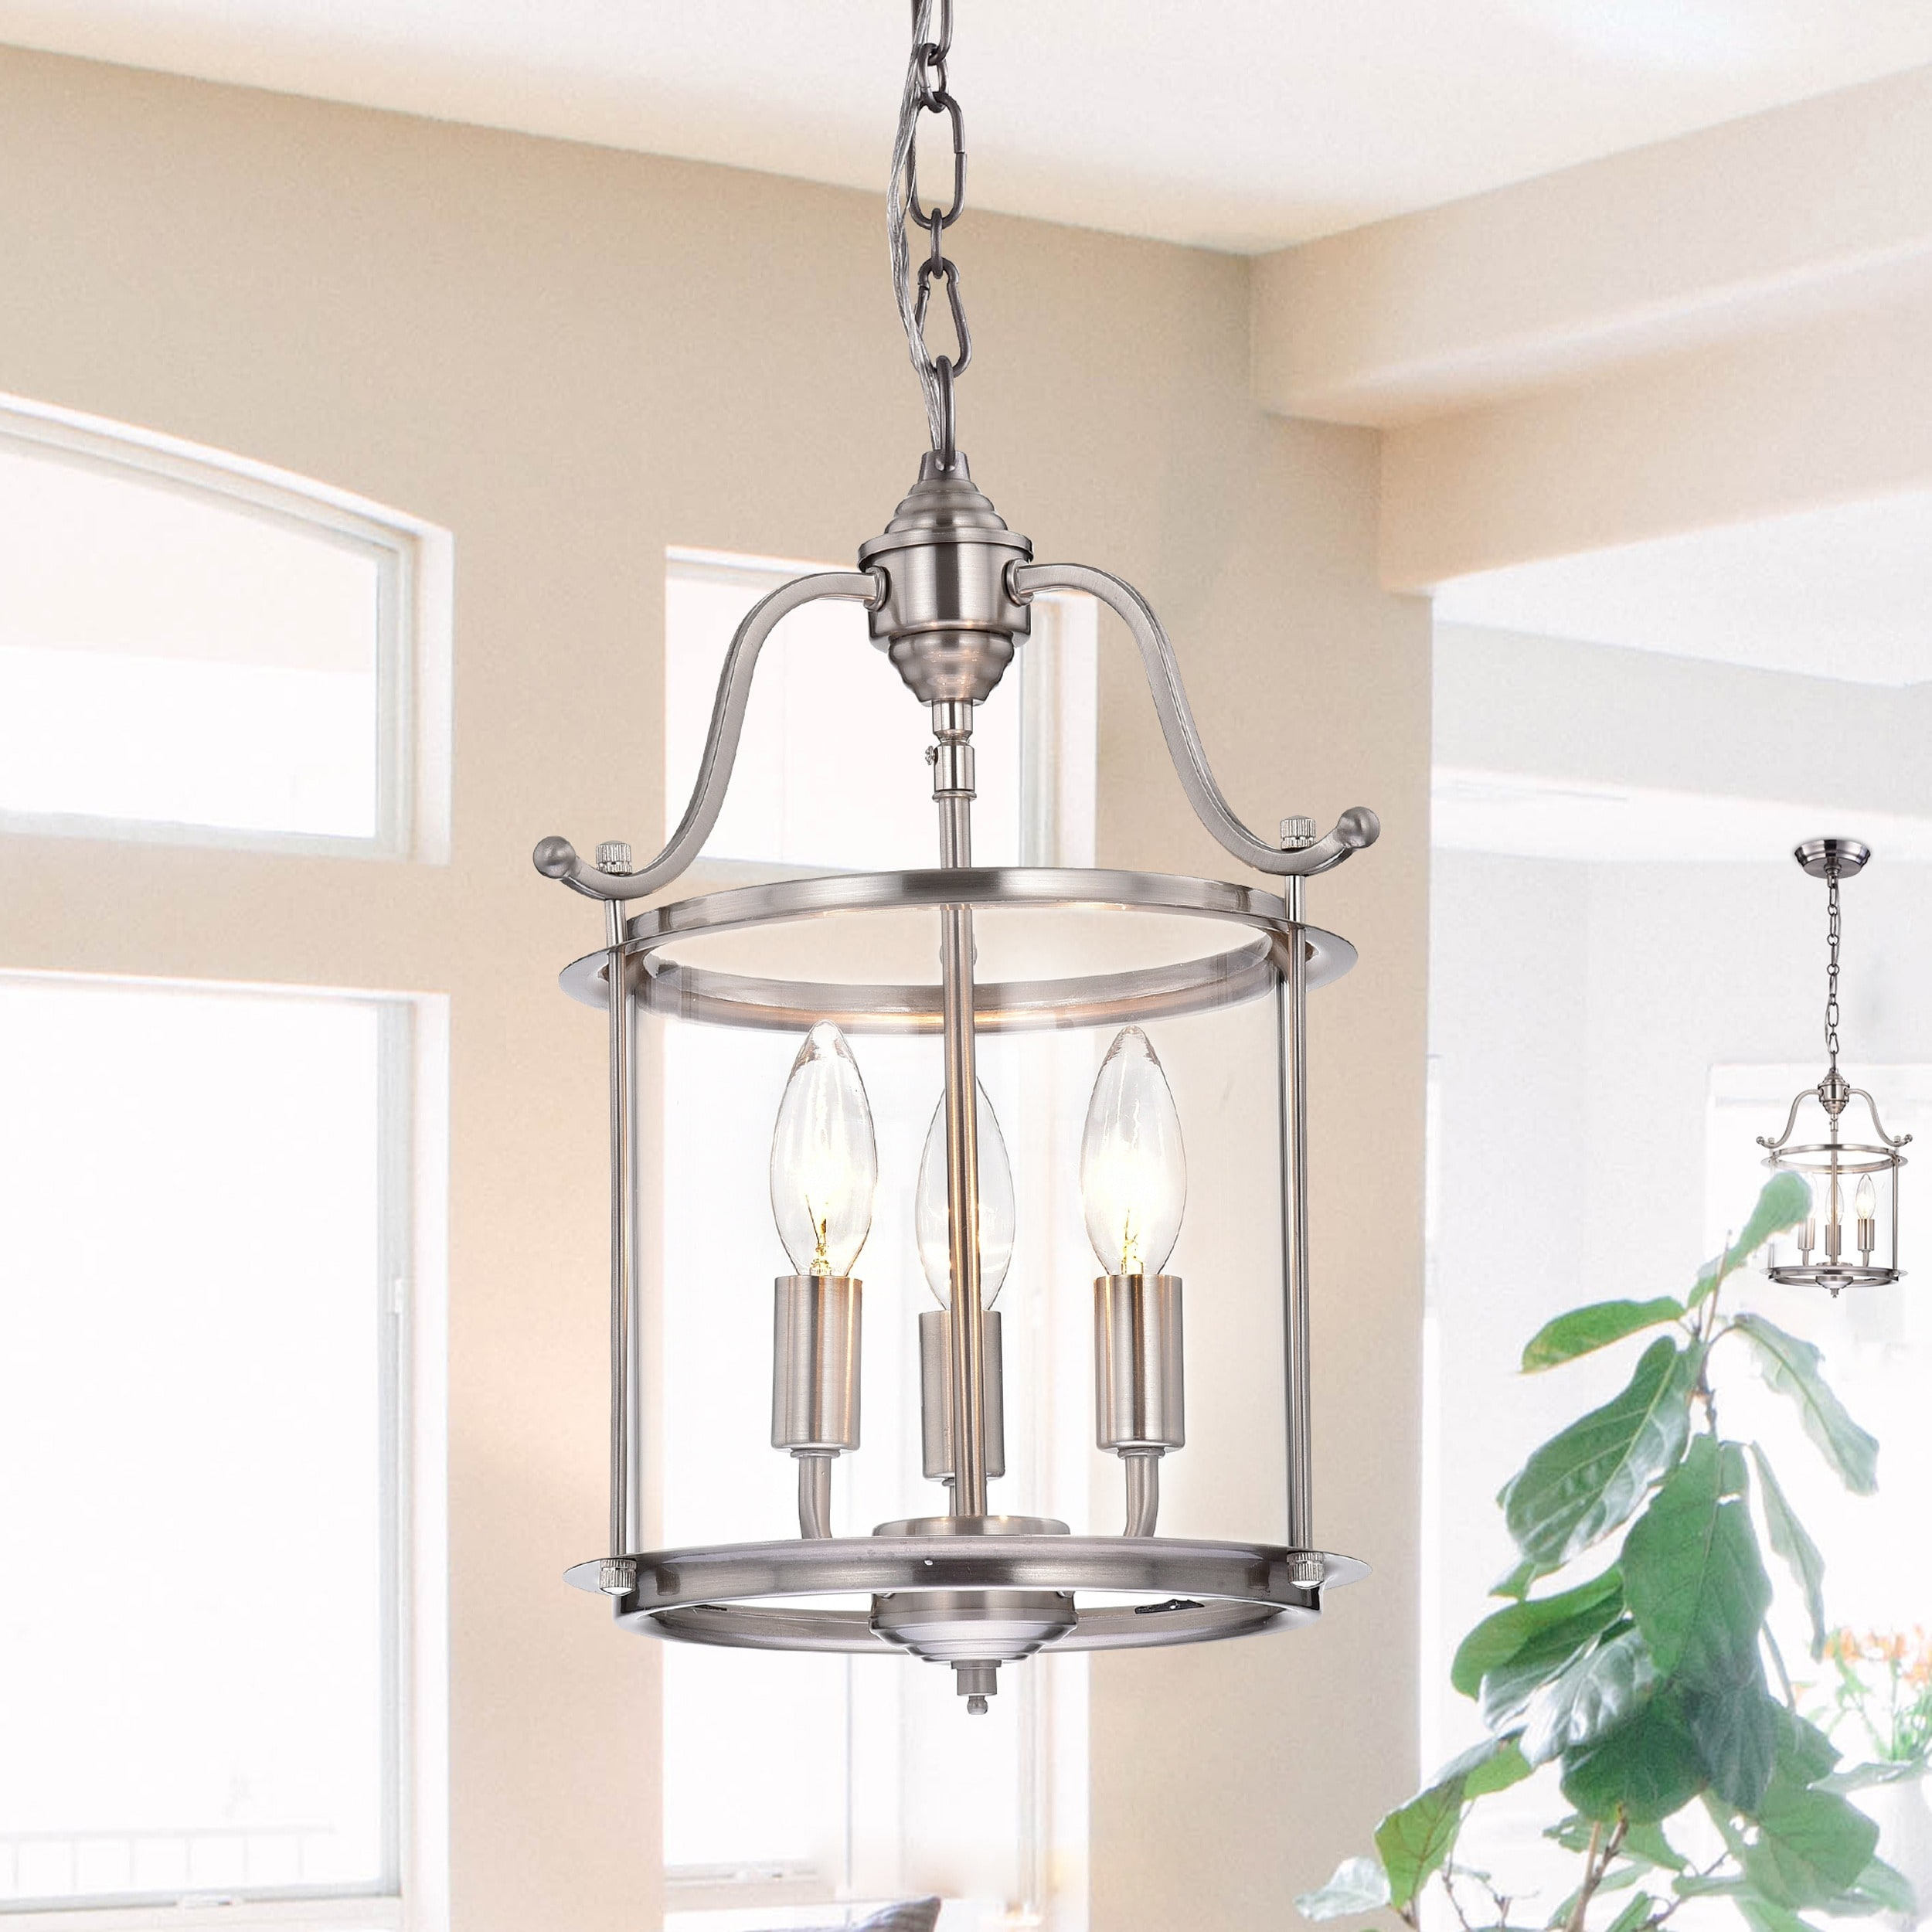 inch fusano metropolitan cfm lighting krystal shown finish light wide chandelier polished item image magnifying eidolon in glass and nickel shade capitol